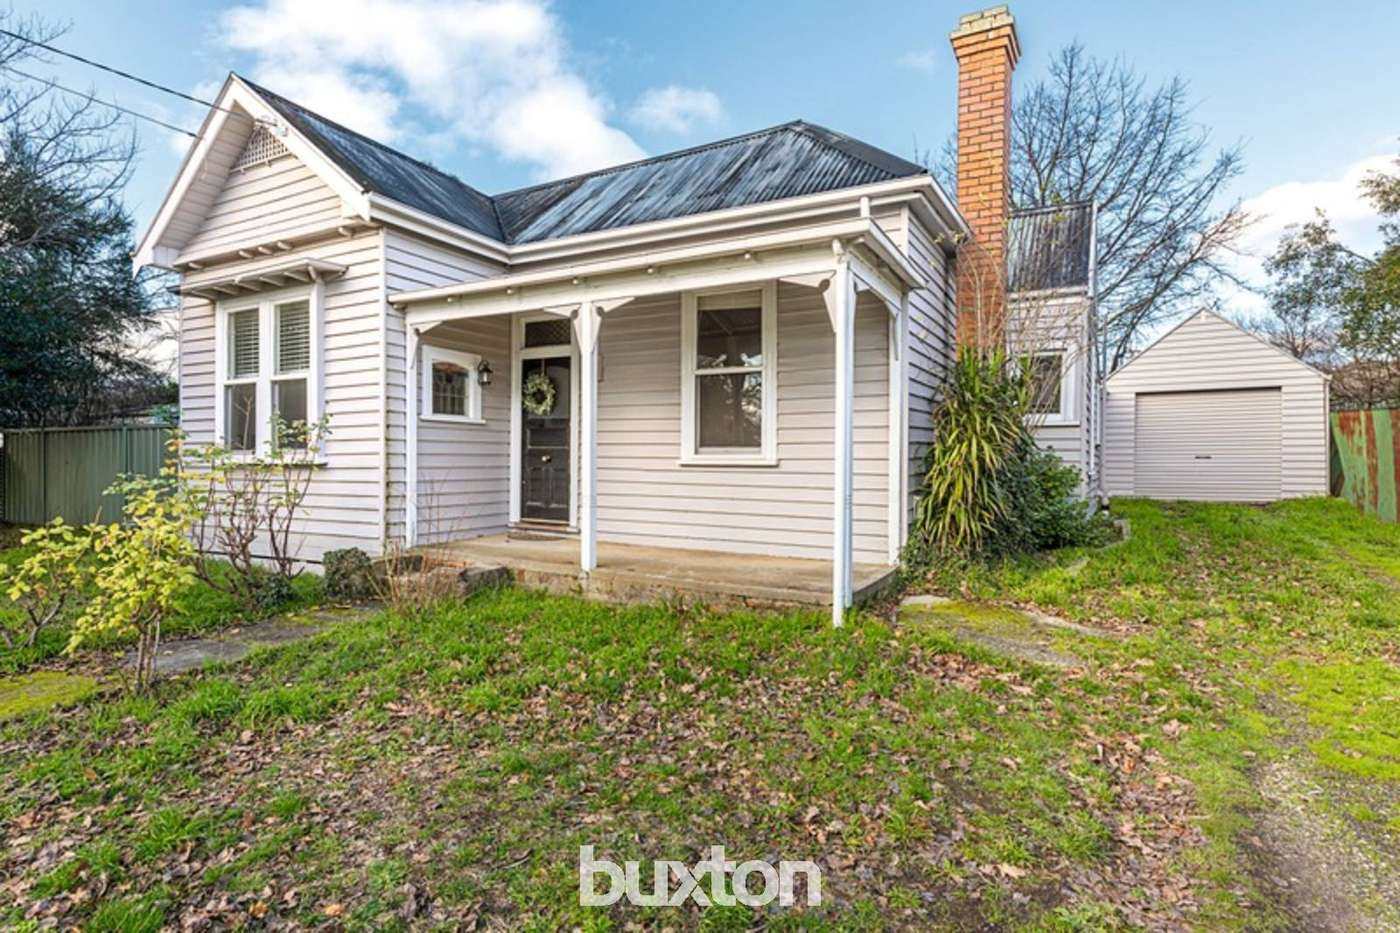 Main view of Homely house listing, 210 Clyde Street, Soldiers Hill, VIC 3350